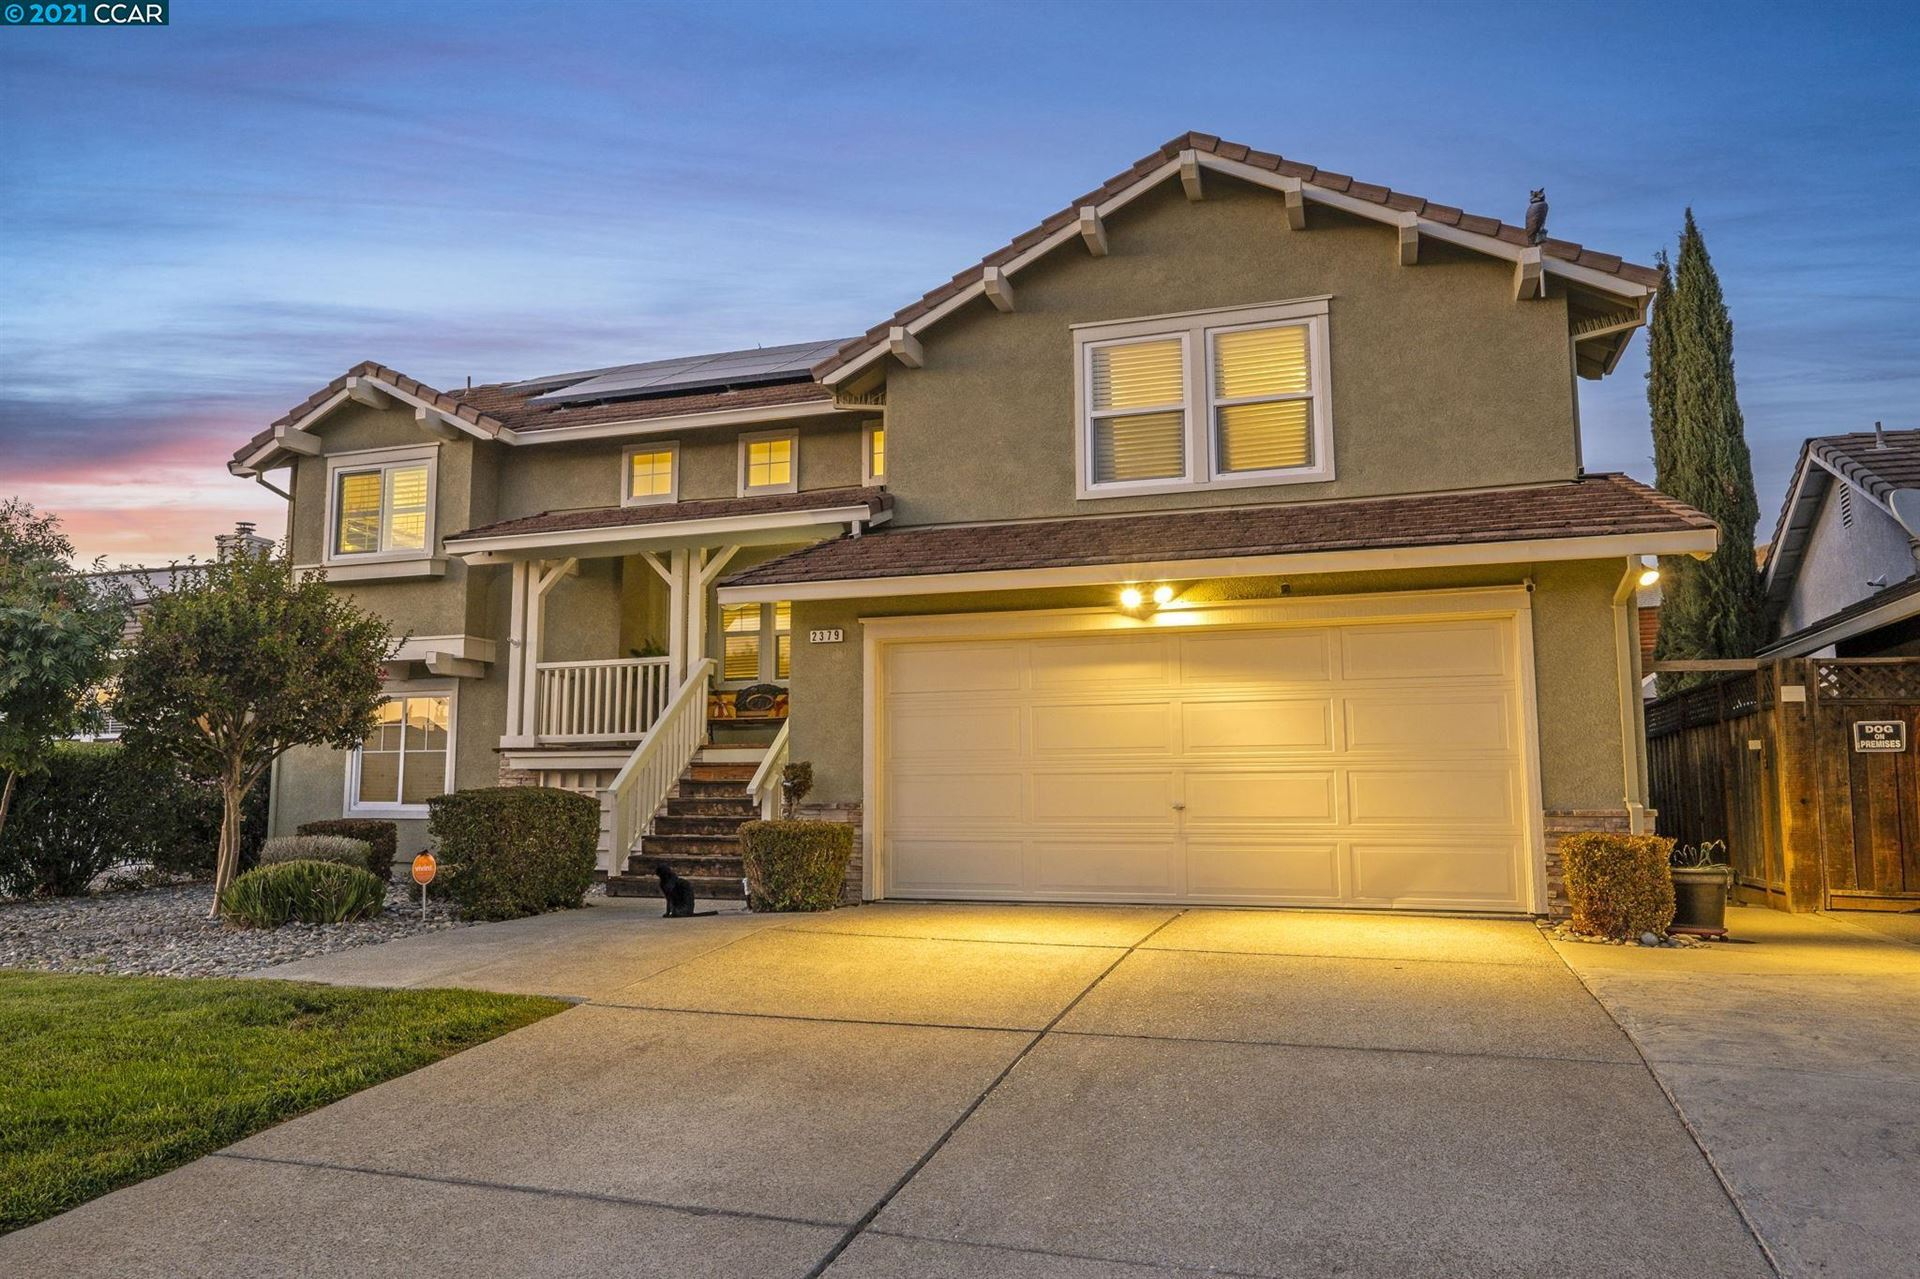 Photo of 2379 Whitetail Drive, Antioch, CA 94531 (MLS # 40971278)